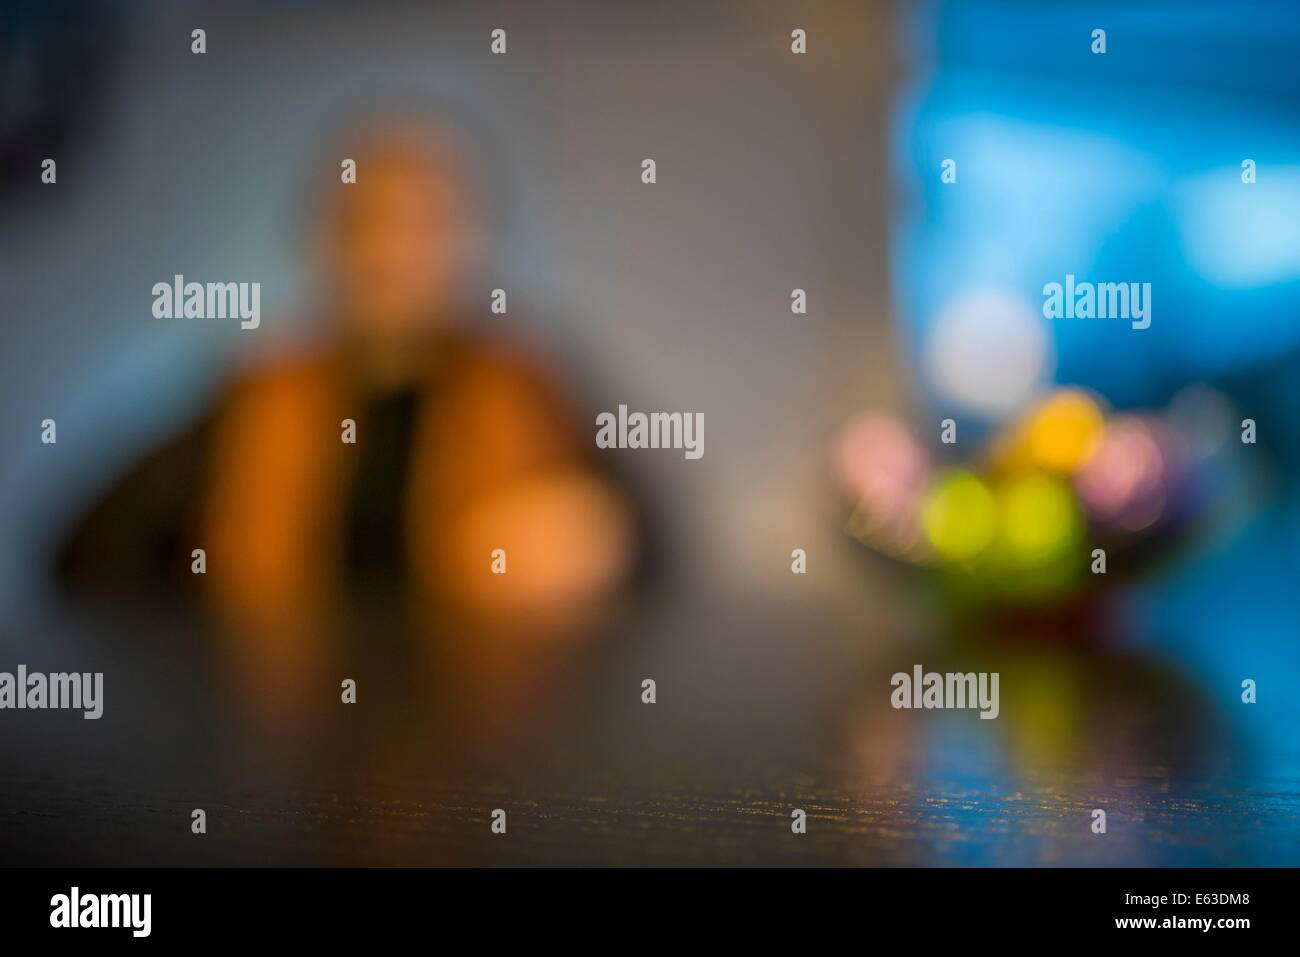 Portrait of woman with a fruit bowl, blurred effect. - Stock Image